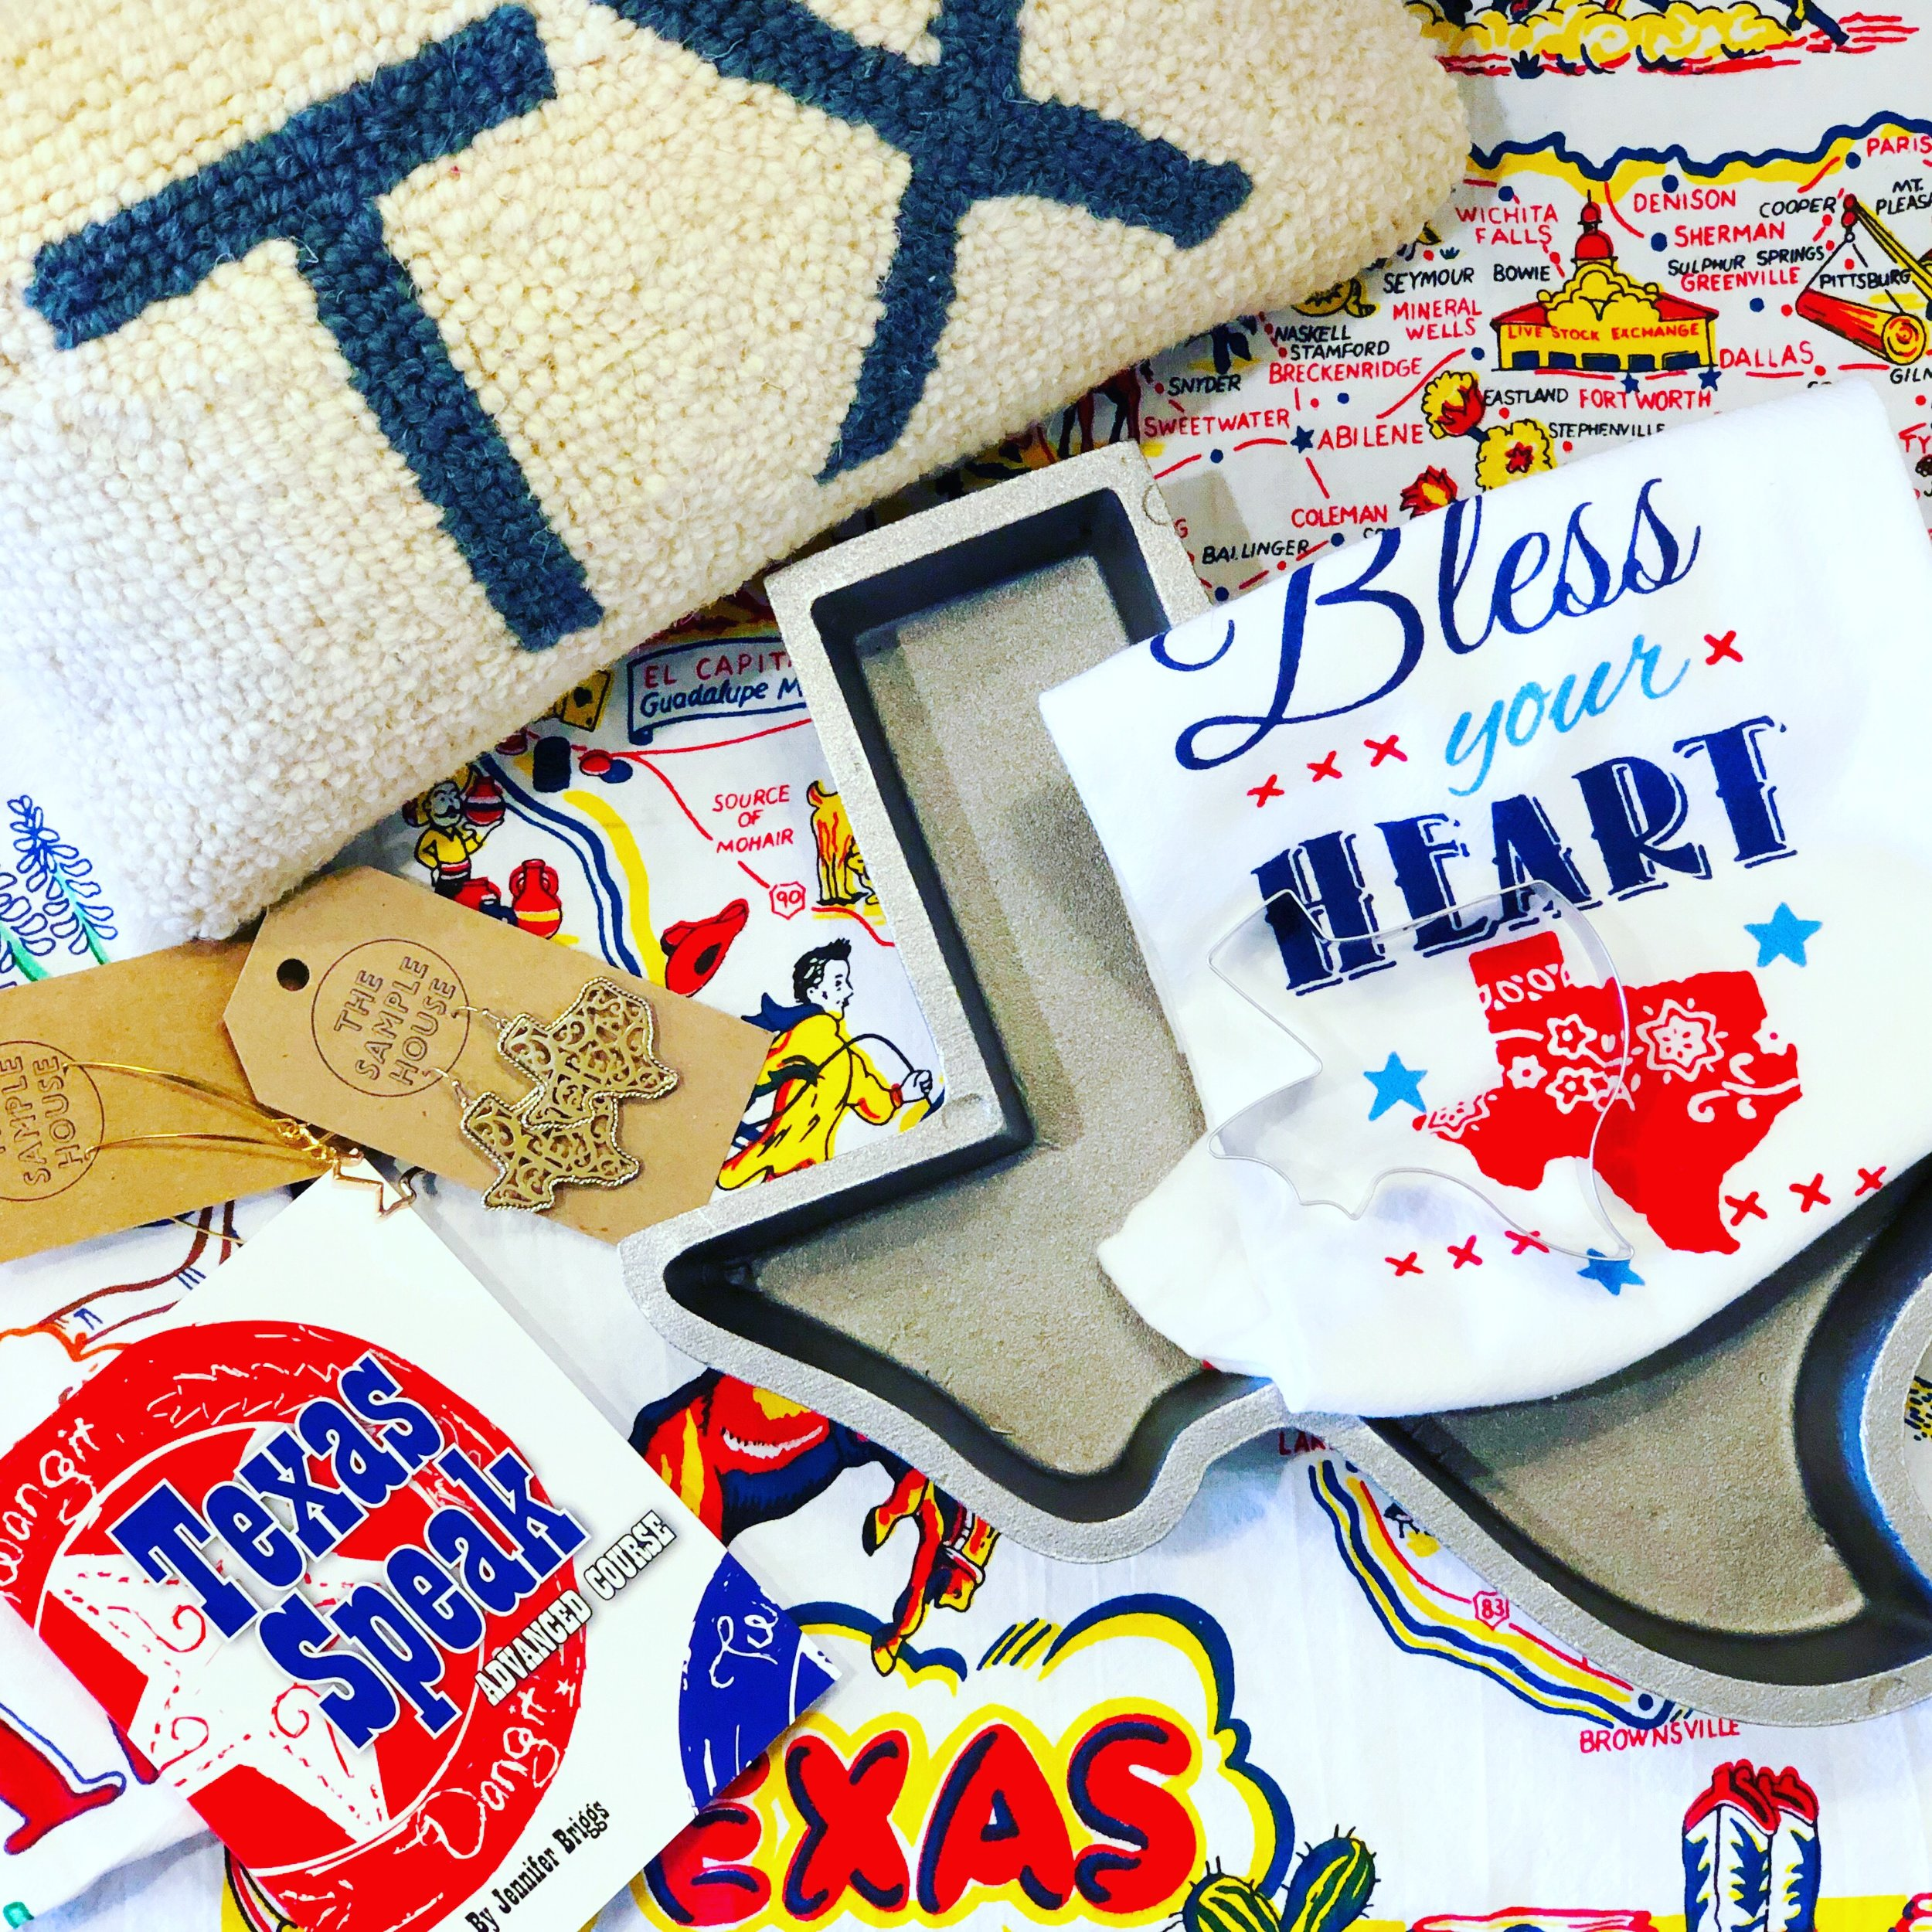 Texas Pride - We love a theme. Texas themed products are wildly popular with our customers.